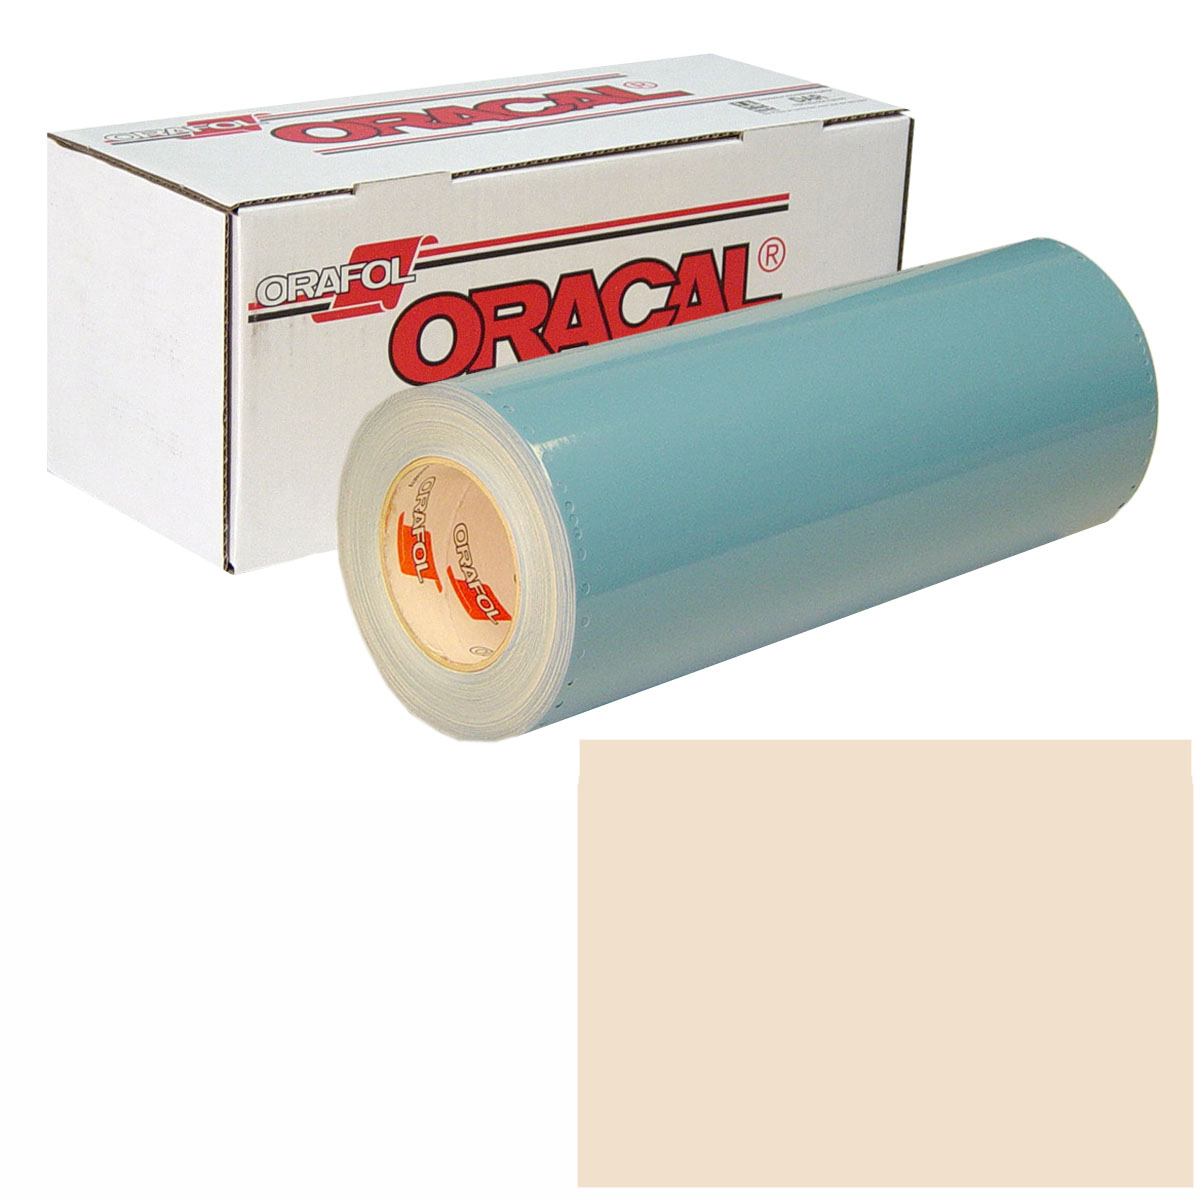 ORACAL 751 Unp 24in X 50yd 018 Light Ivory